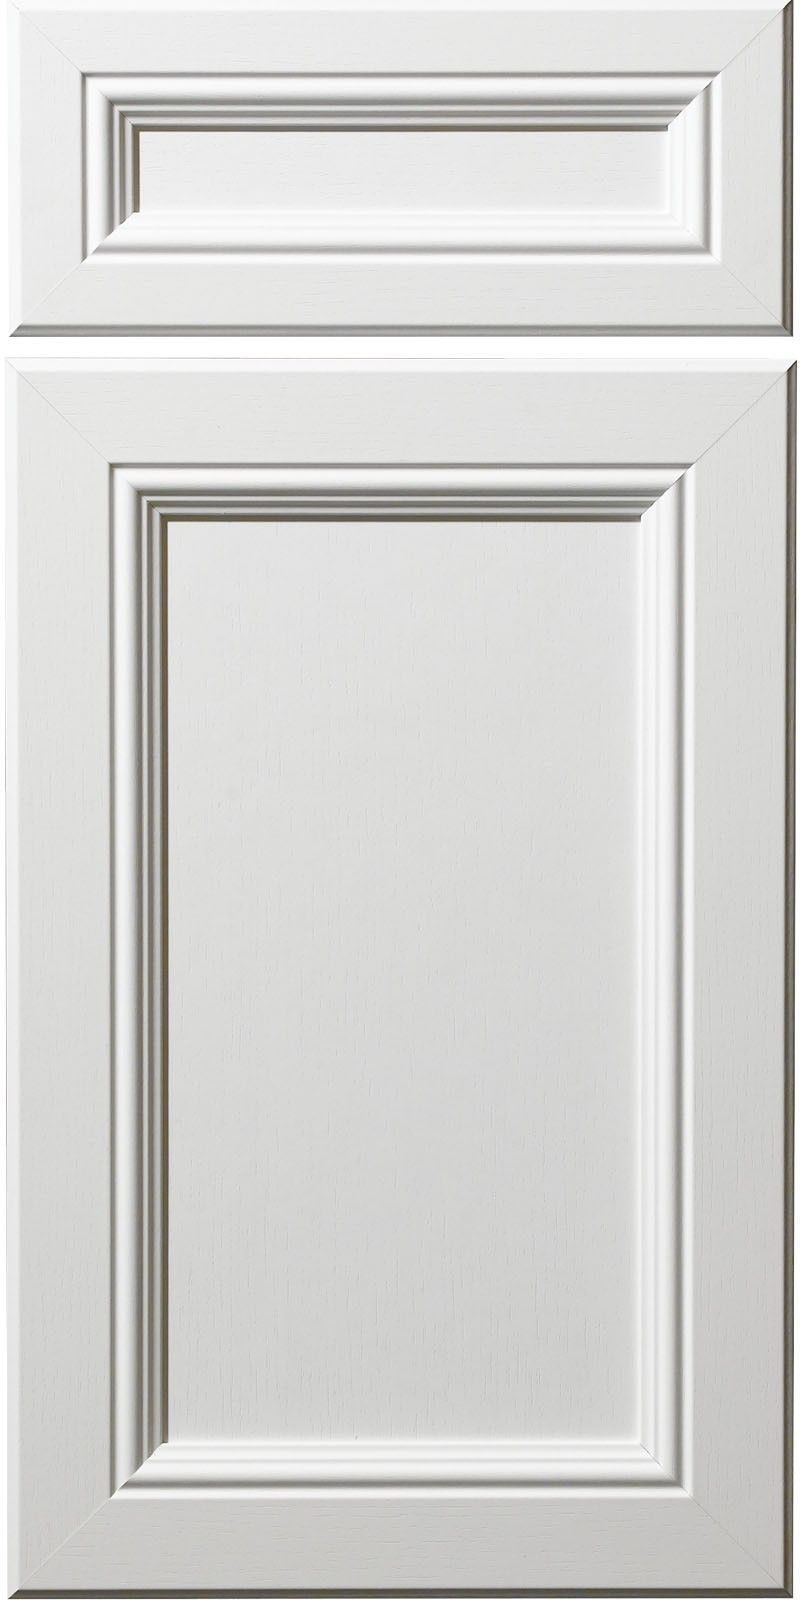 Recessed Panel Construction Cabinet Doors Amp Drawer Fronts Cabinet Doors White Kitchen Cabinet Doors Kitchen Cabinet Doors